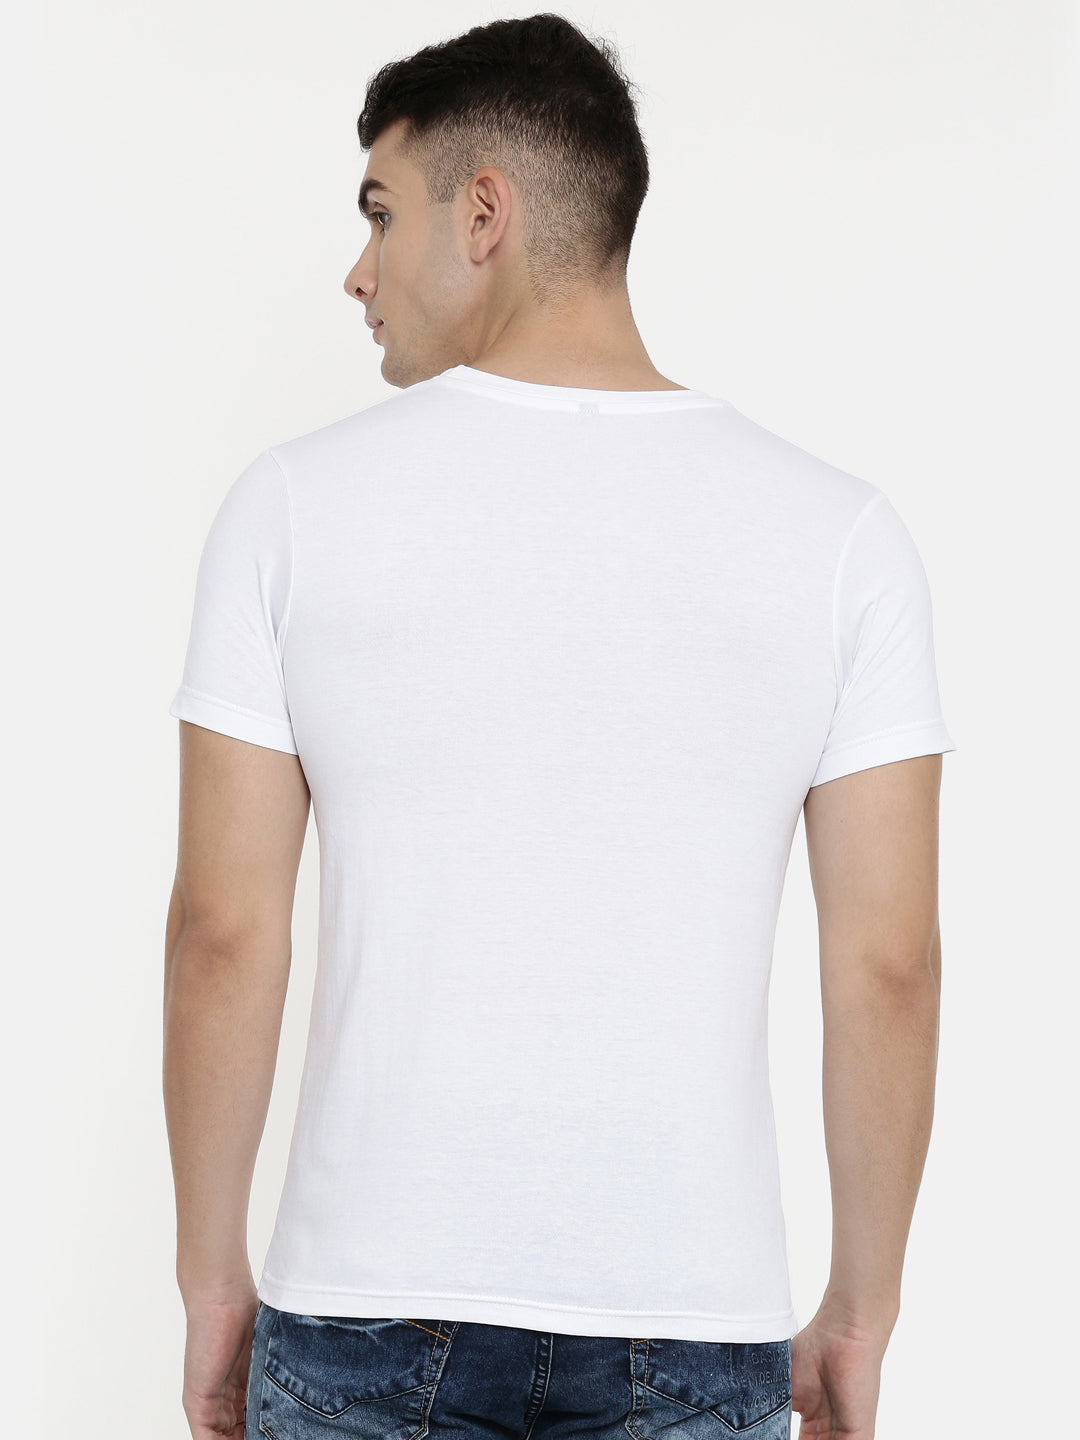 White Round Neck Half Sleeve T-shirt Baromin